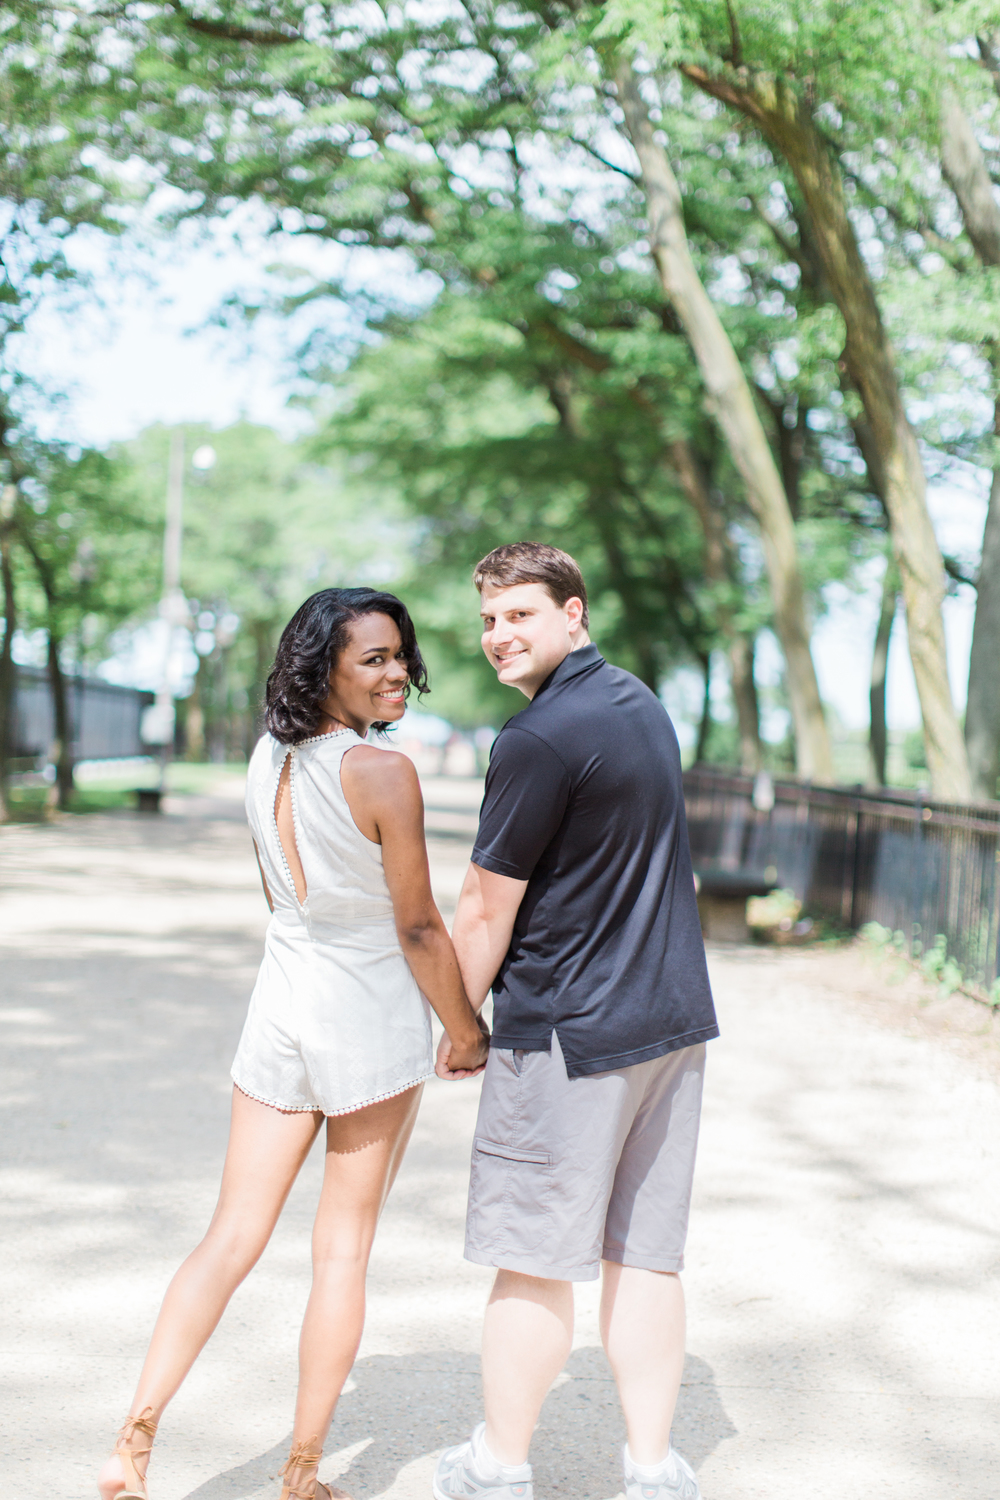 Olive Park Bonphotage Chicago Engagement Session